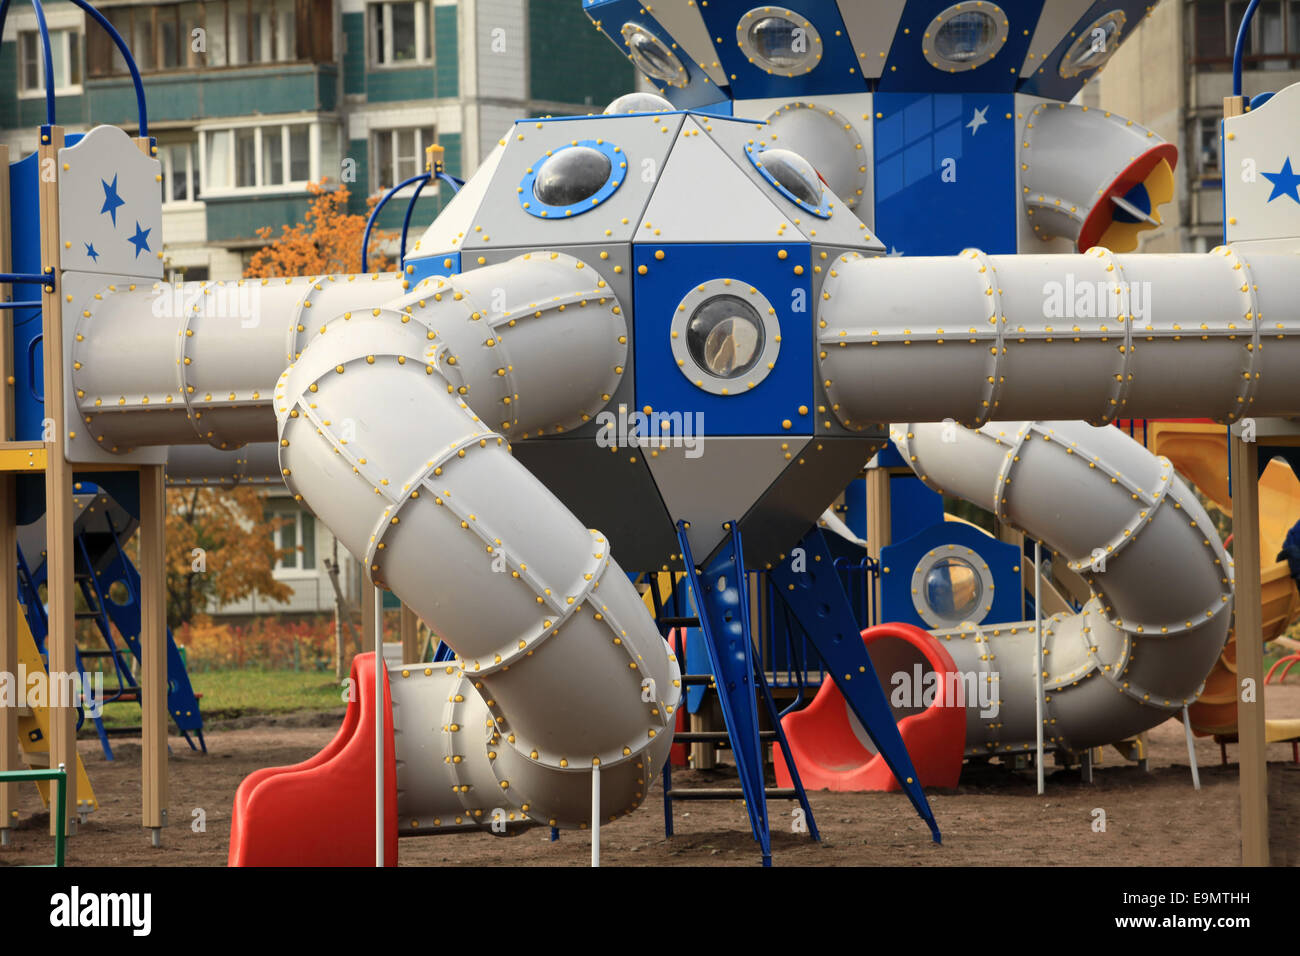 spaceport - Stock Image